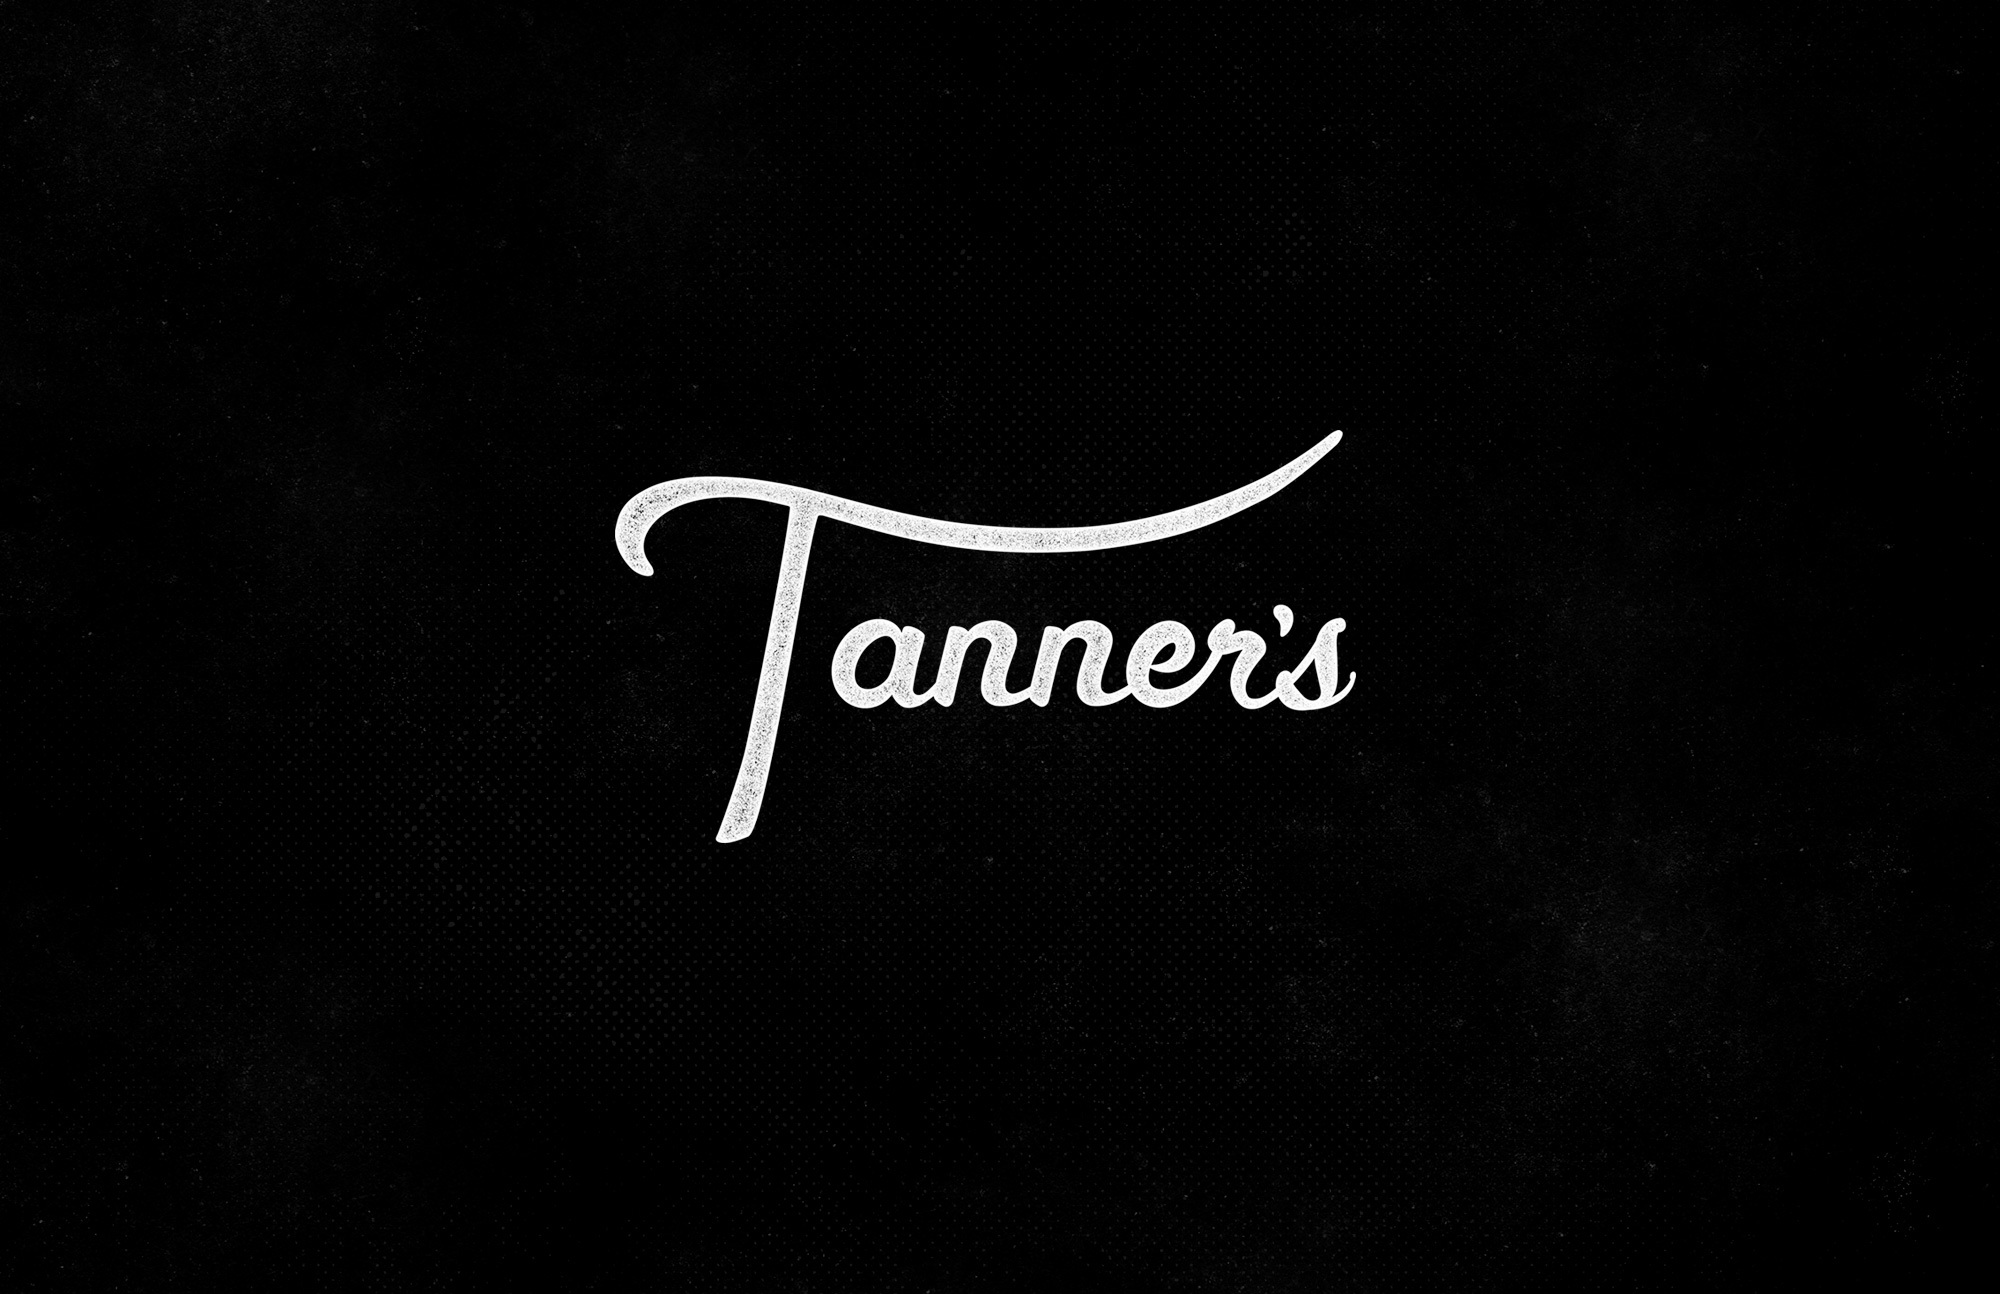 002_Logo_Tanners_1